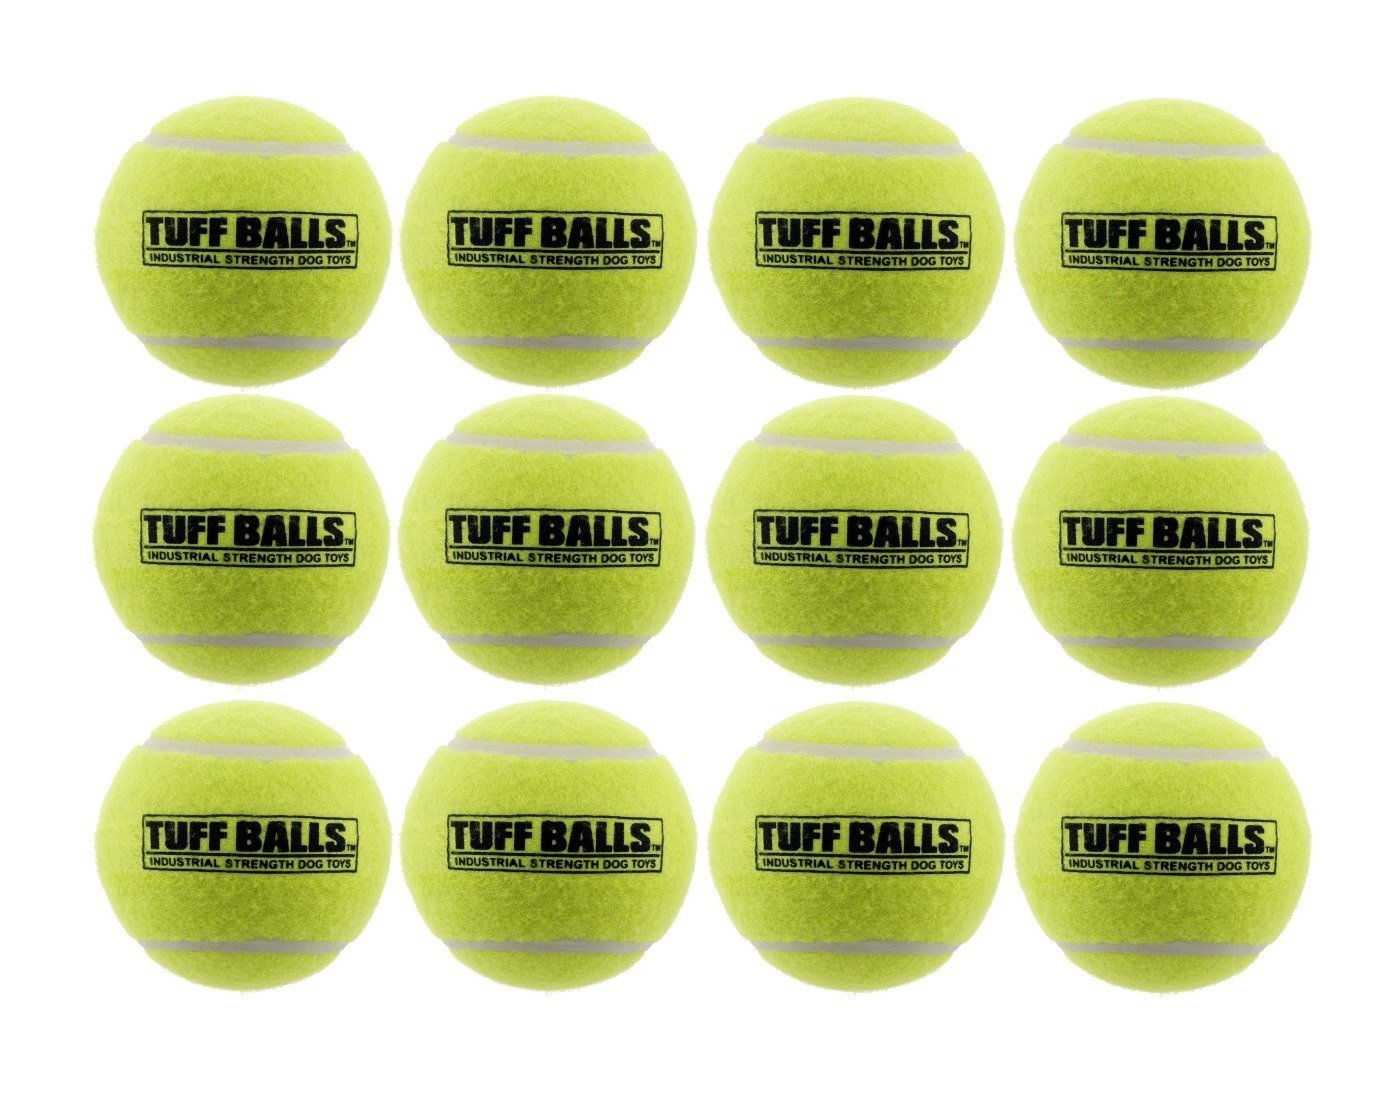 12 Tuff Balls - Industrial Strength Dog Toys